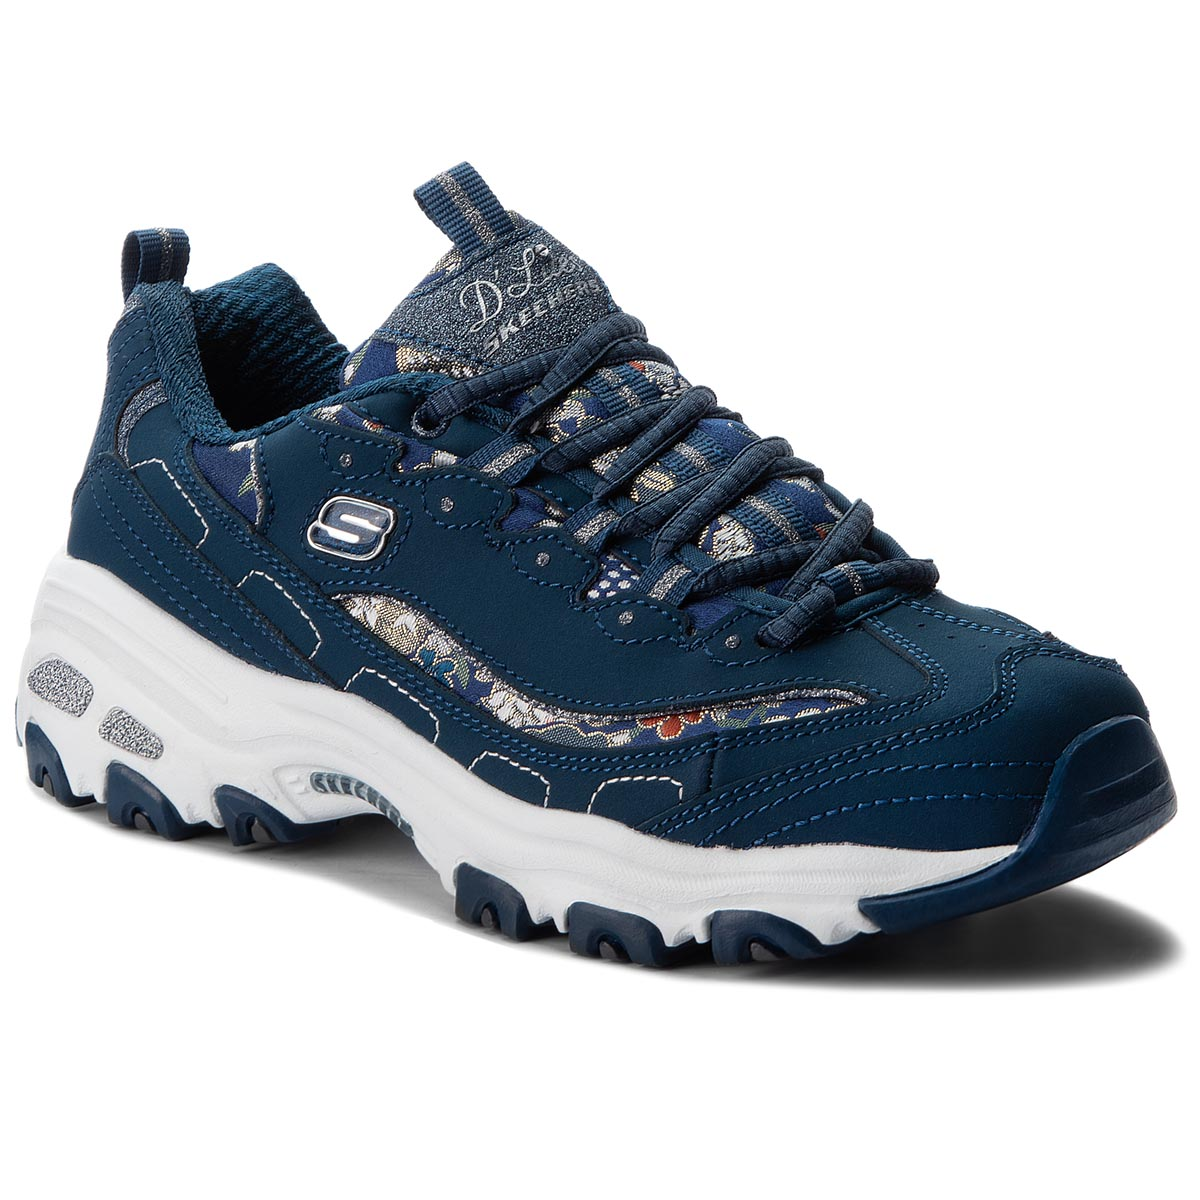 Sneakers SKECHERS - D'lites Floral Days 13082/NVY Navy